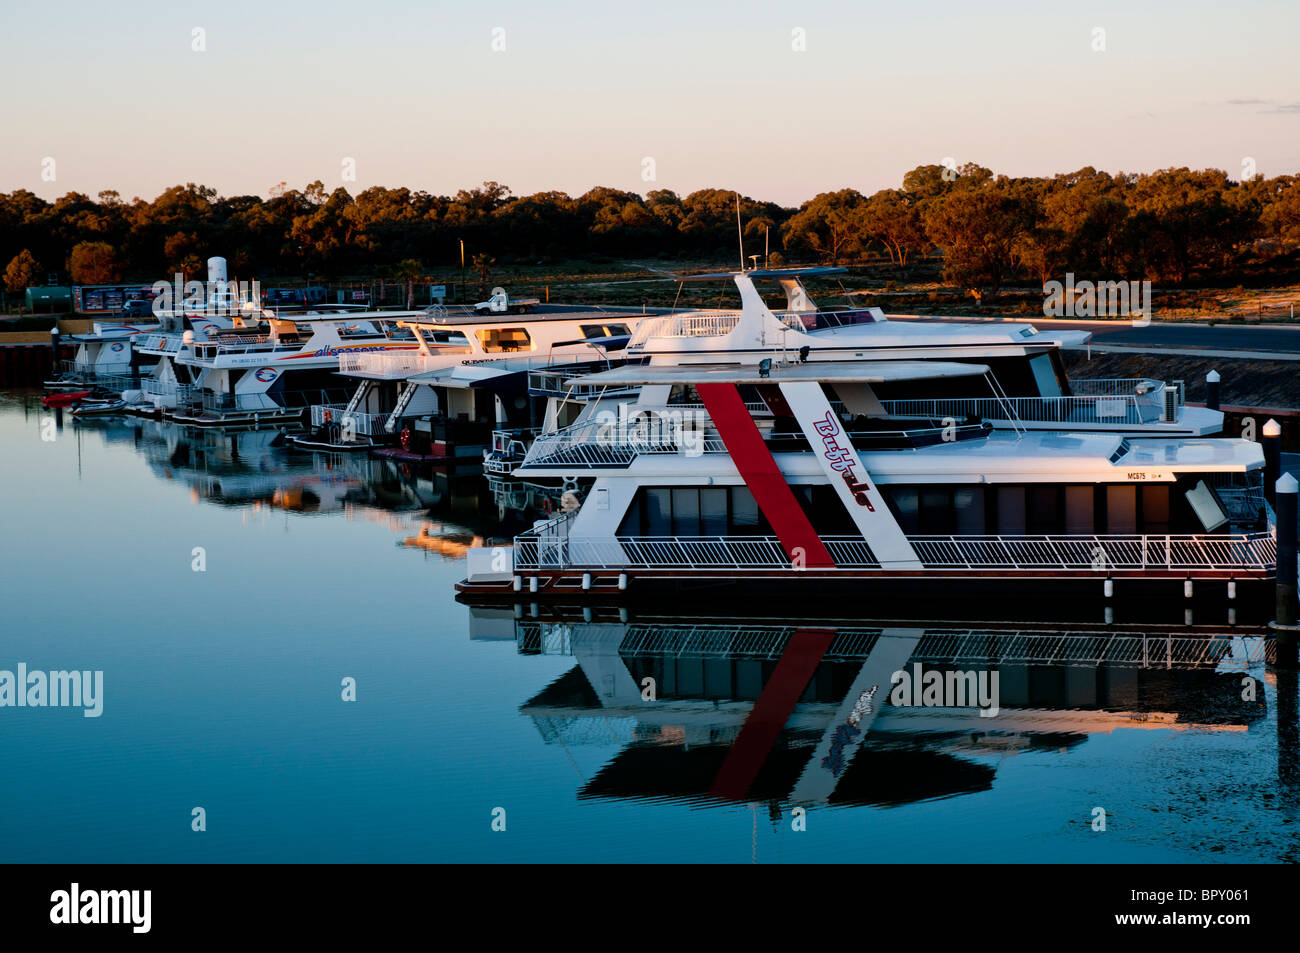 Luxury house boats moored in a basin of the Murray River in Mildura, Victoria, Australia Stock Photo